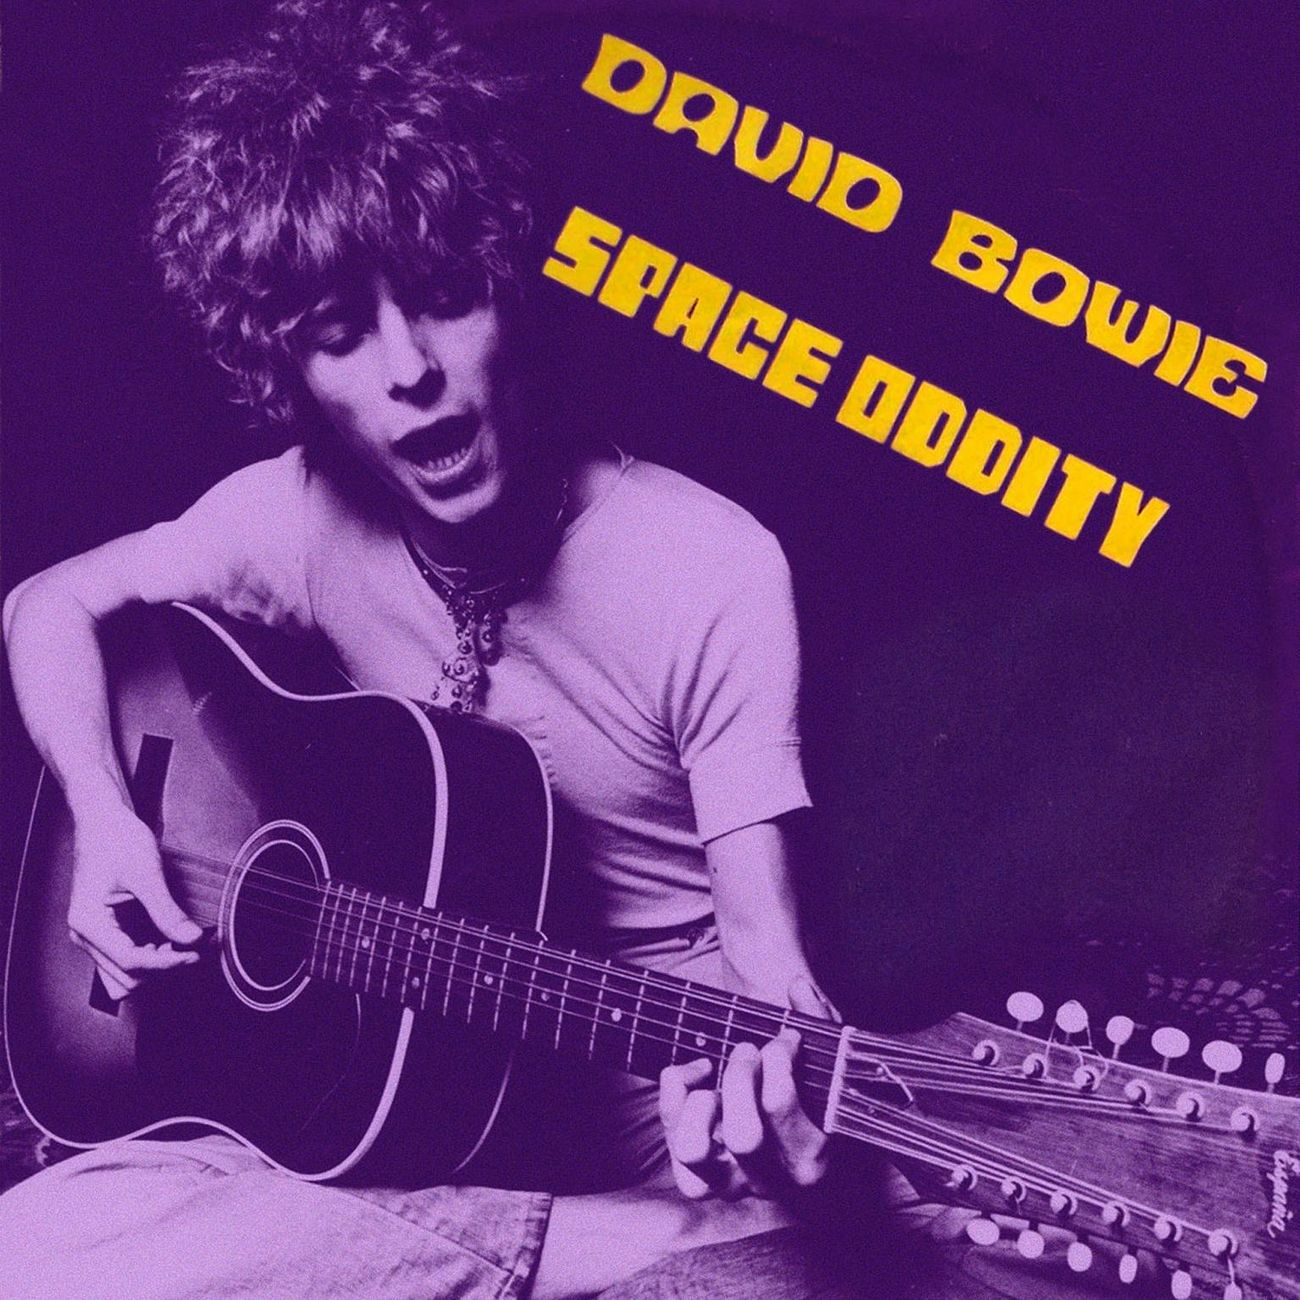 Space oddity (40th anniversary EP)